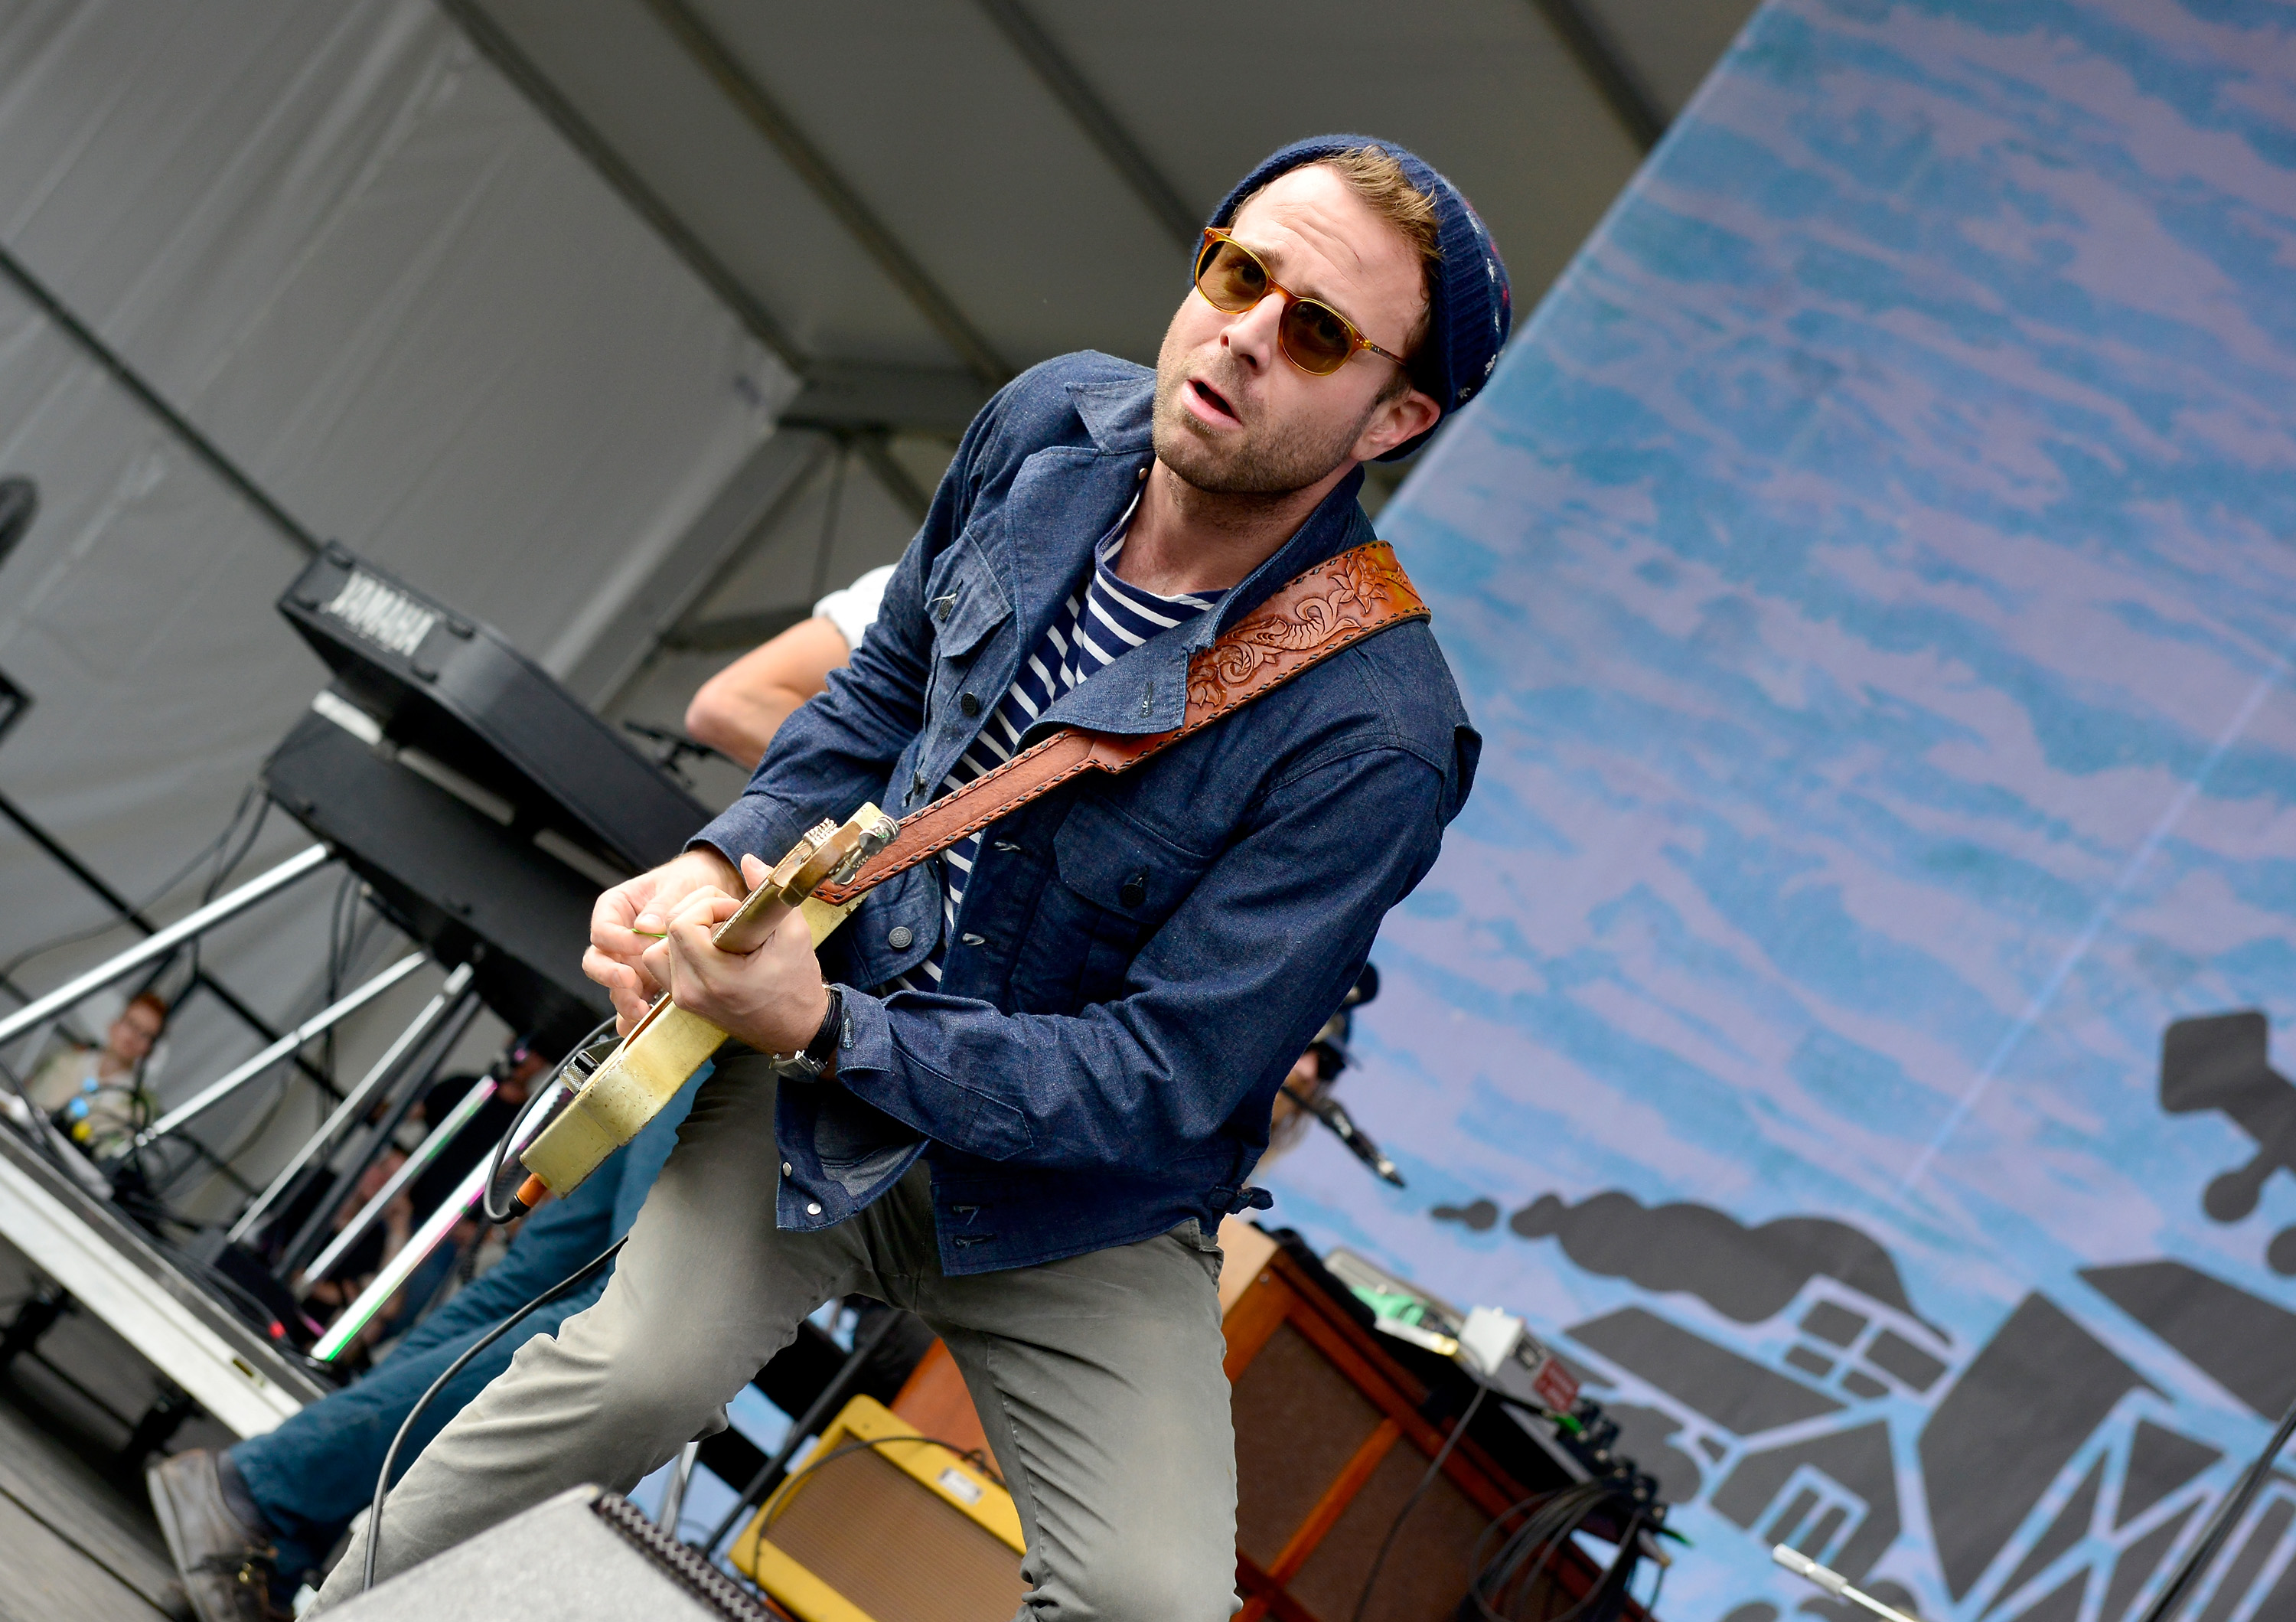 Taylor Goldsmith of Dawes performs onstage during Pilgrimage Music & Cultural Festival on September 27, 2015 in Franklin, Tennessee. (Getty Images)